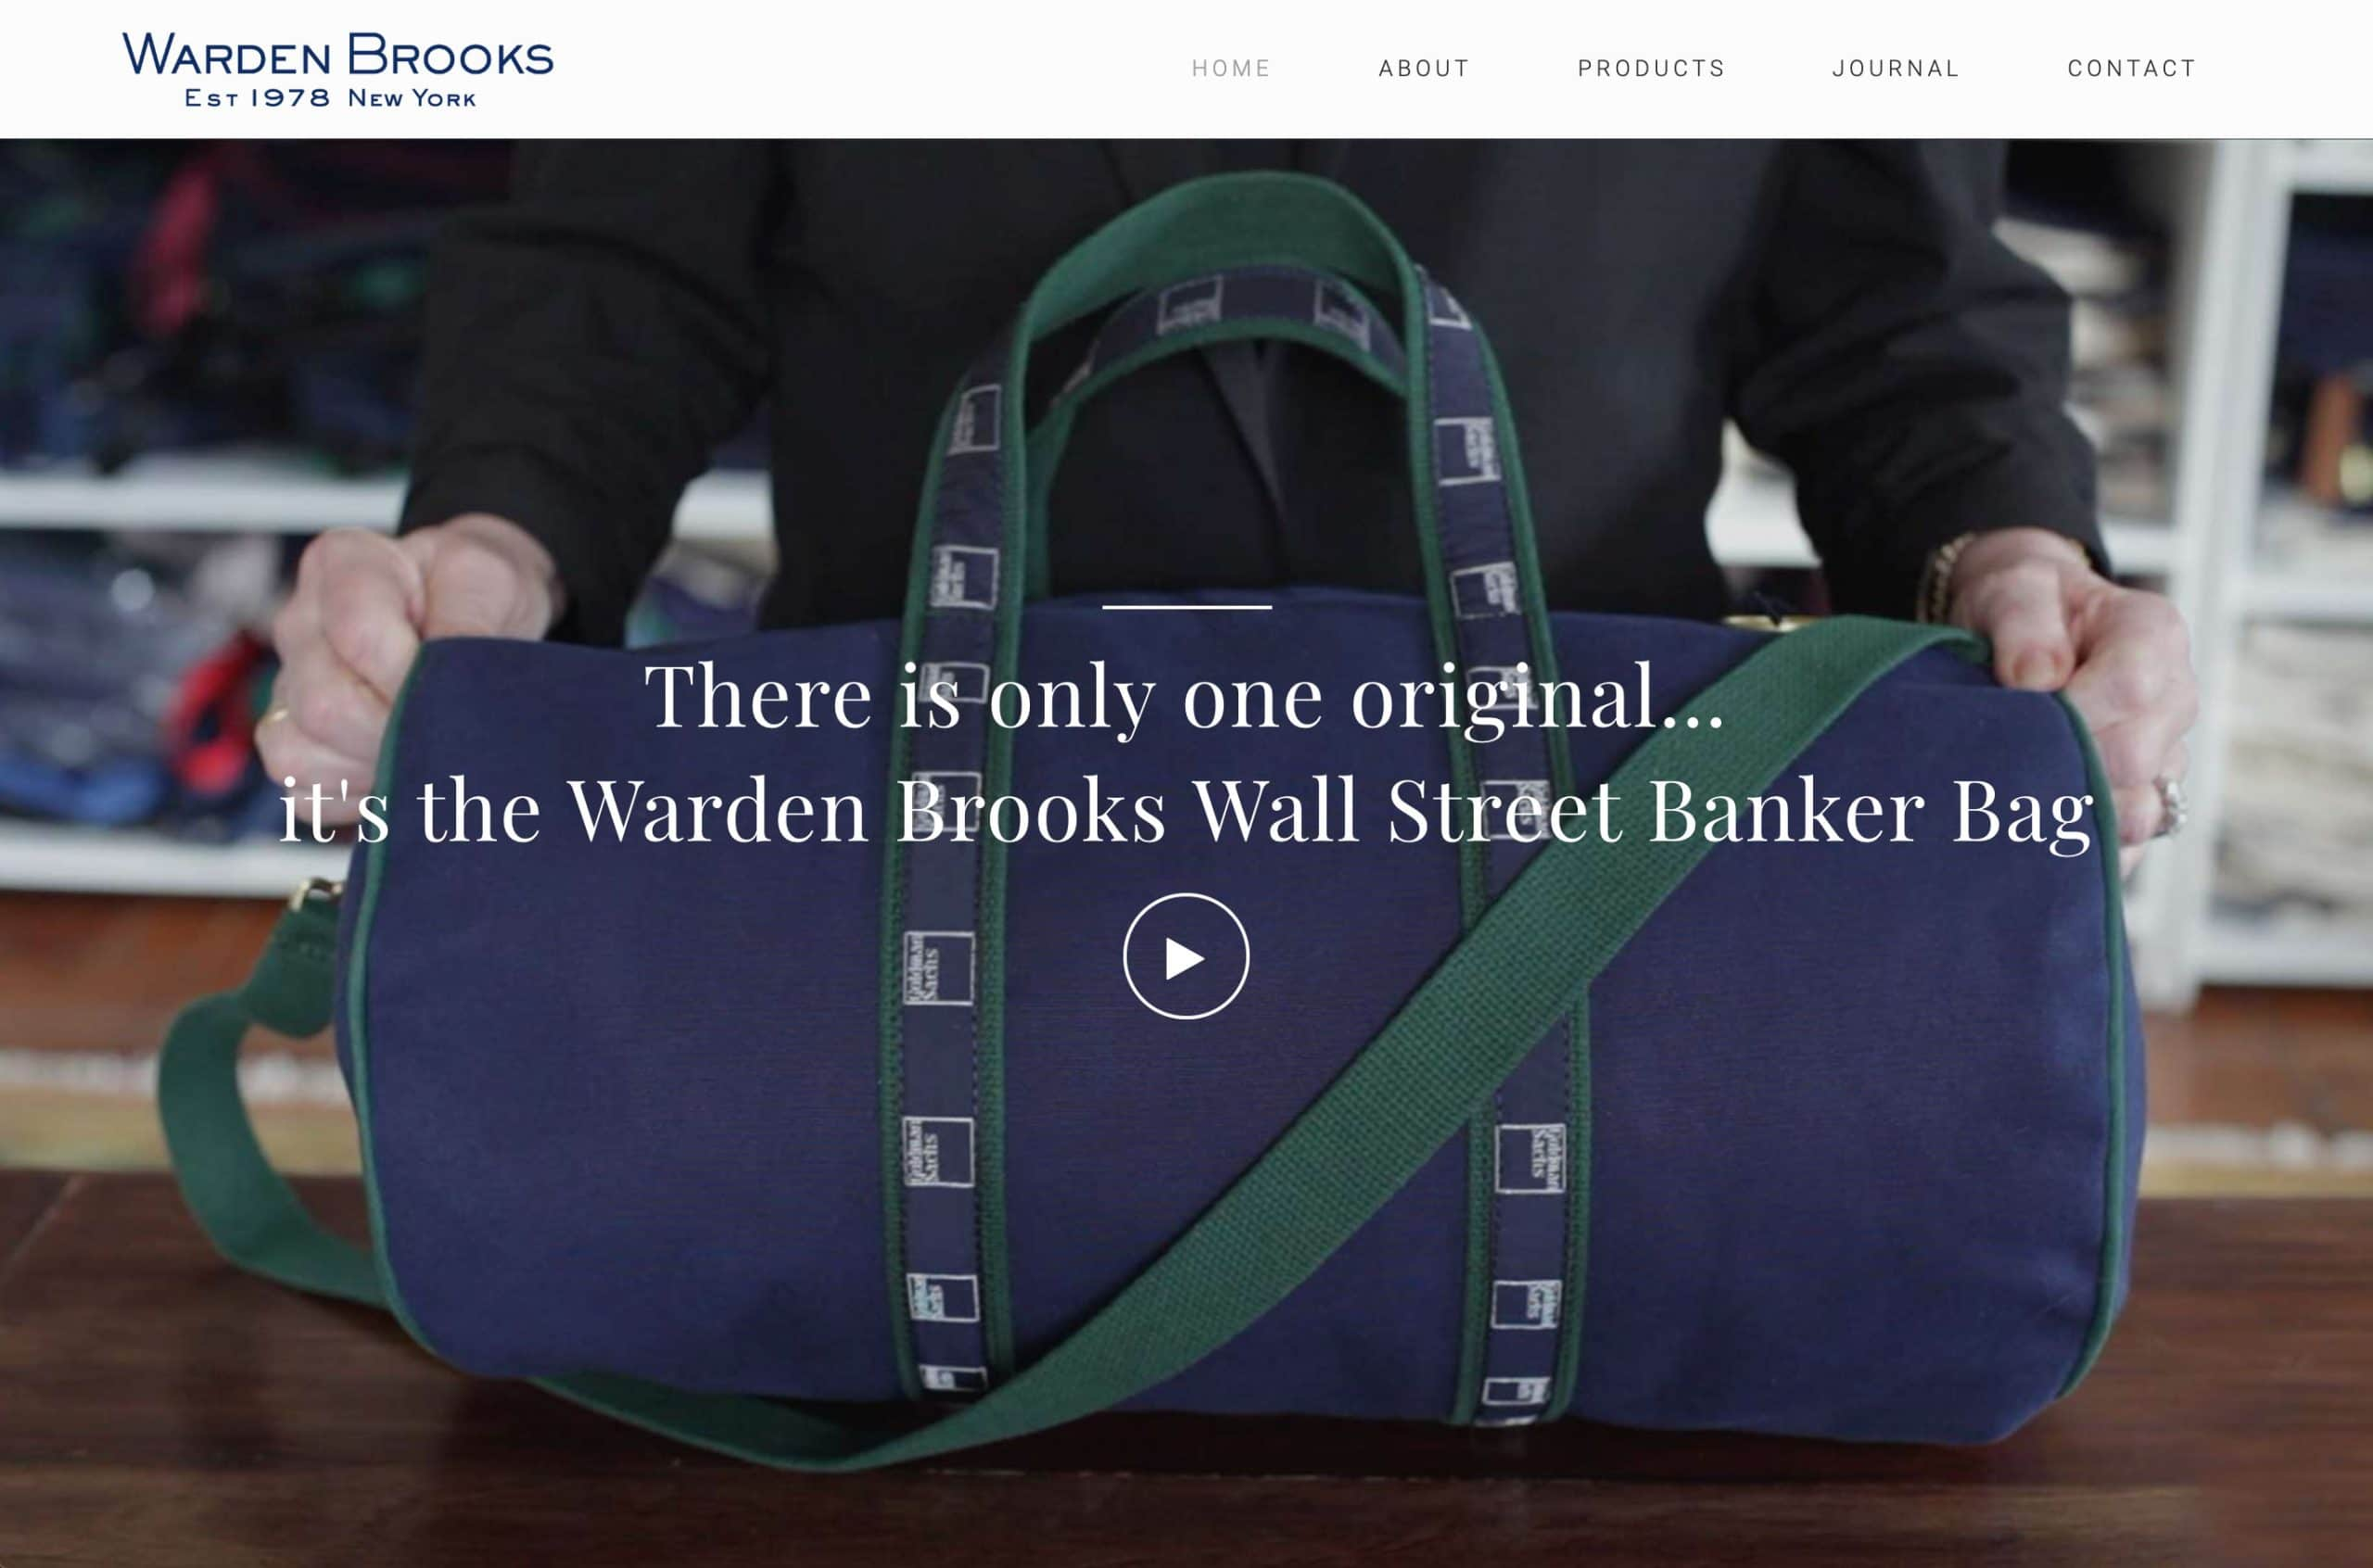 Website designed for Warden Brooks